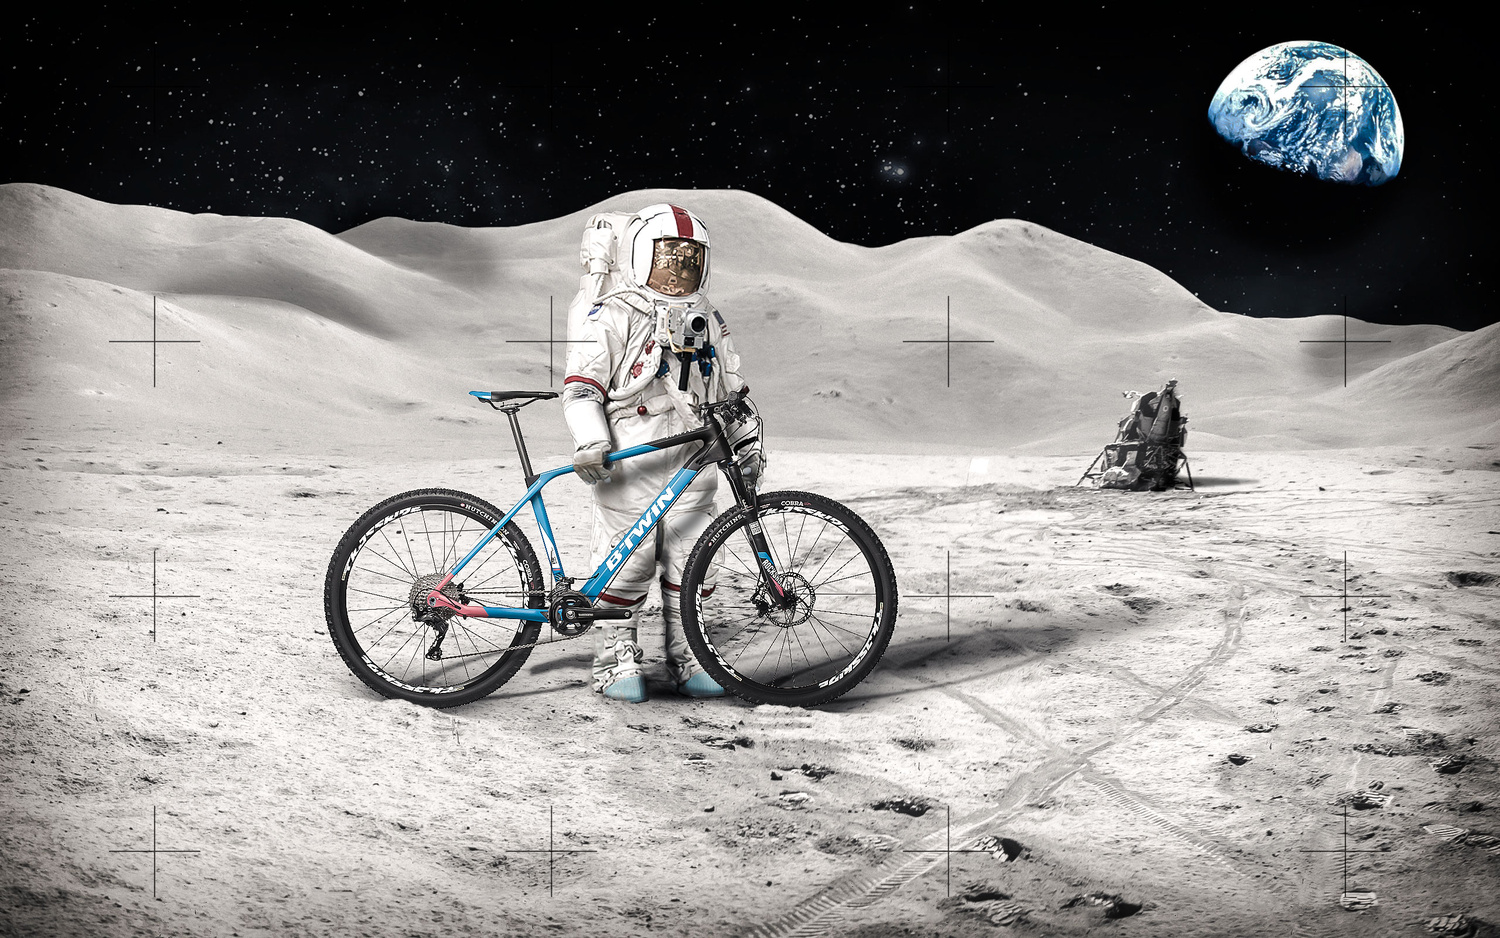 Decathlon bike commercial by Luca Russo